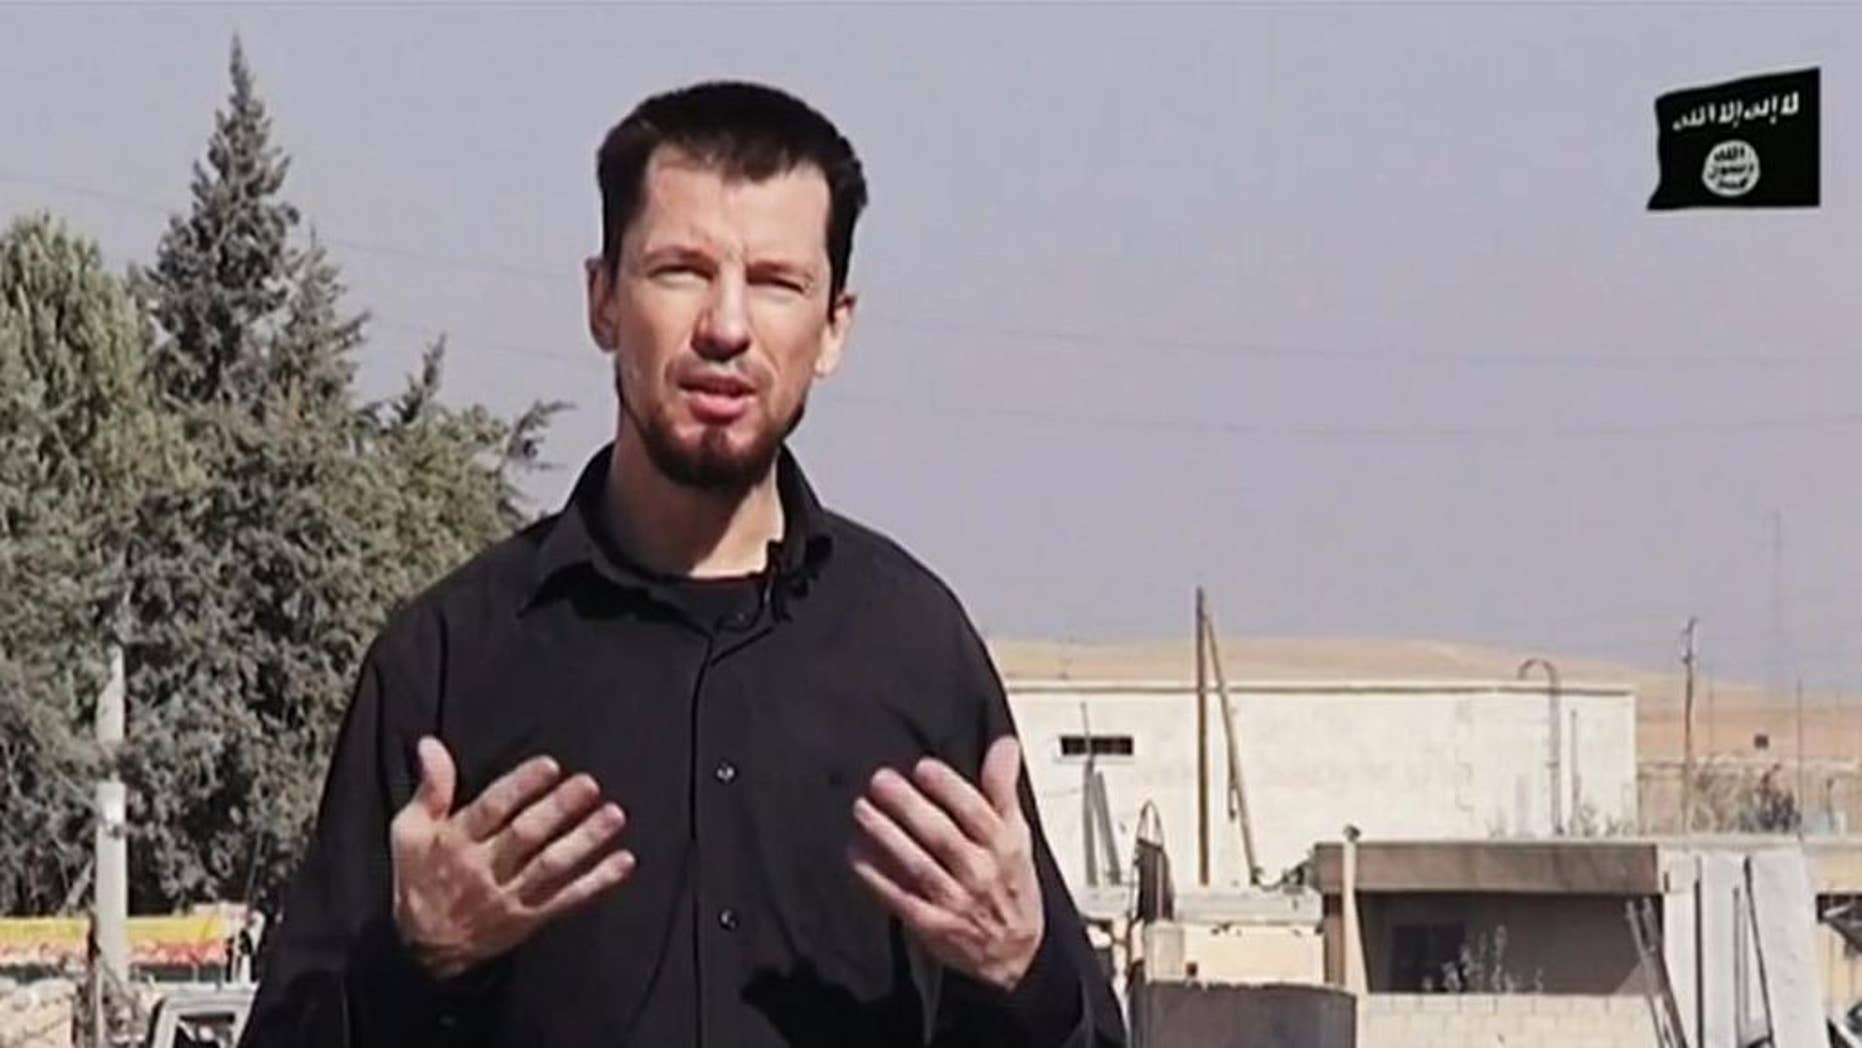 In this still image taken from an undated video published on the Internet by the Islamic State group militants, captive British journalist John Cantlie speaks into a camera in what he identifies as the embattled Syrian town of Kobani. In the video, Cantlie says Islamic State fighters have pushed deeper into the town despite airstrikes by a U.S.-led coalition. It's the latest propaganda video in which Cantlie is exploited by the extremists to take on the role of a war correspondent. AP cannot verify the location independently. (AP Photo)